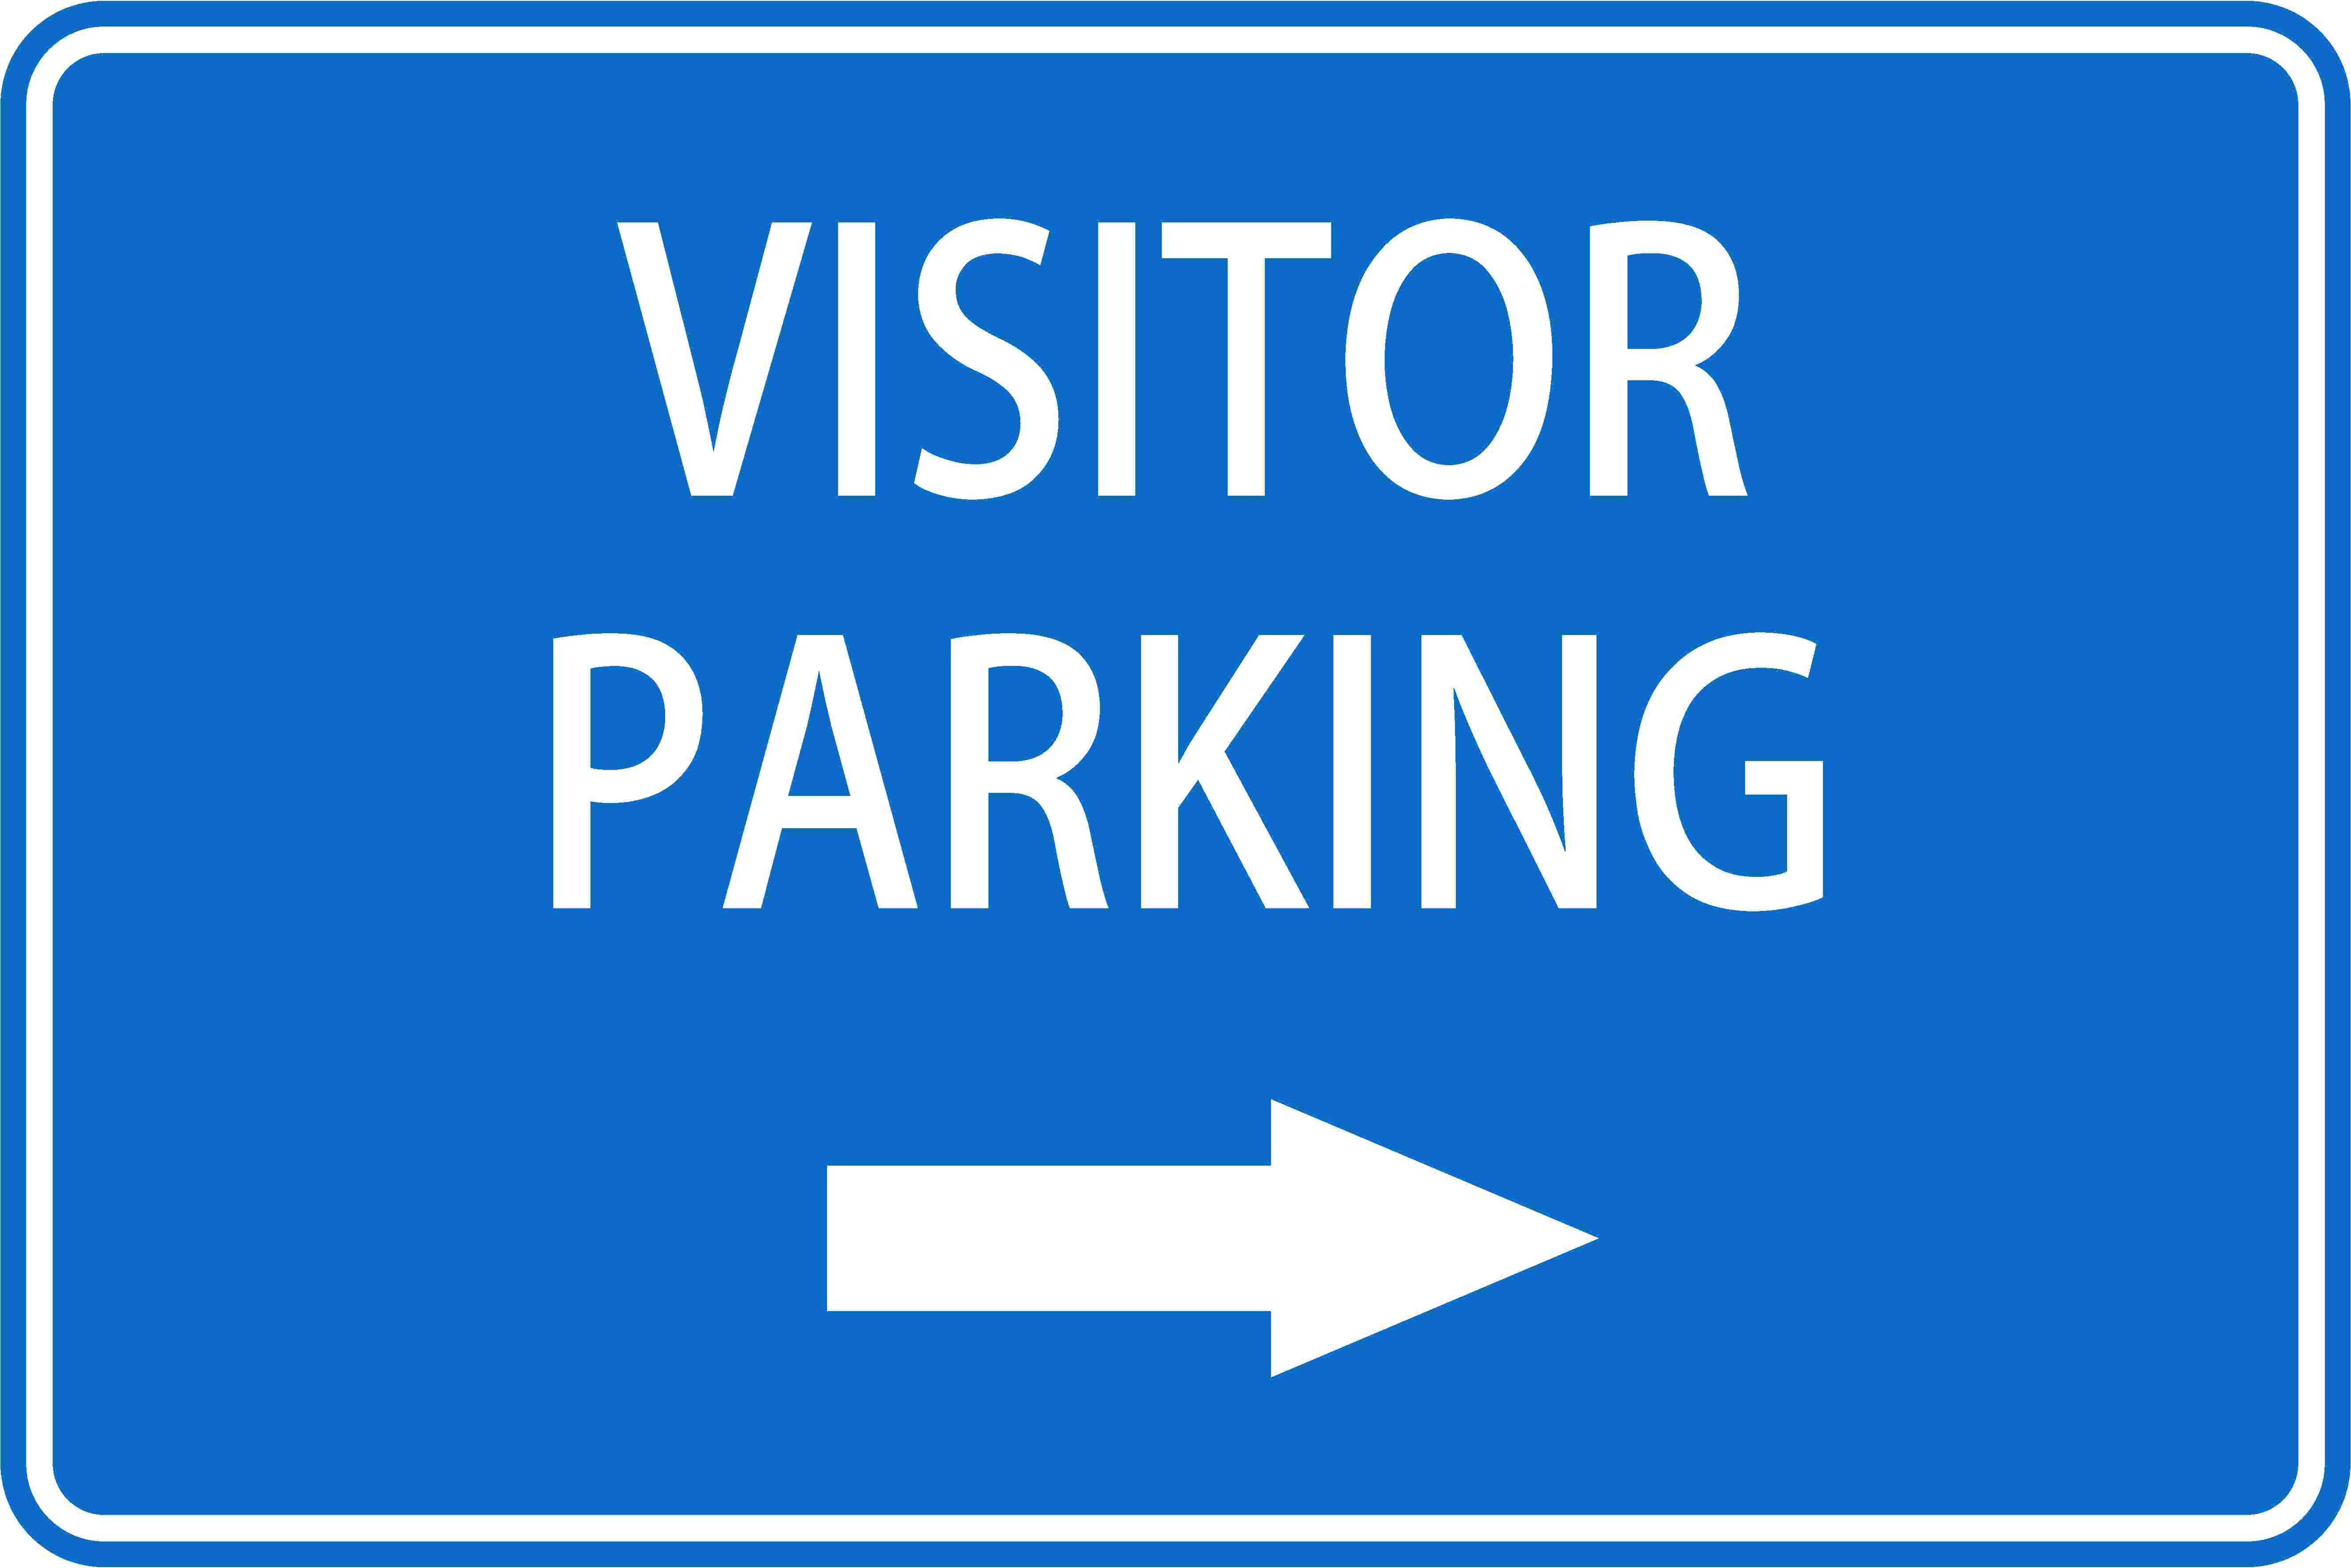 Parking Signs VISITOR PARKING RIGHT ARROW